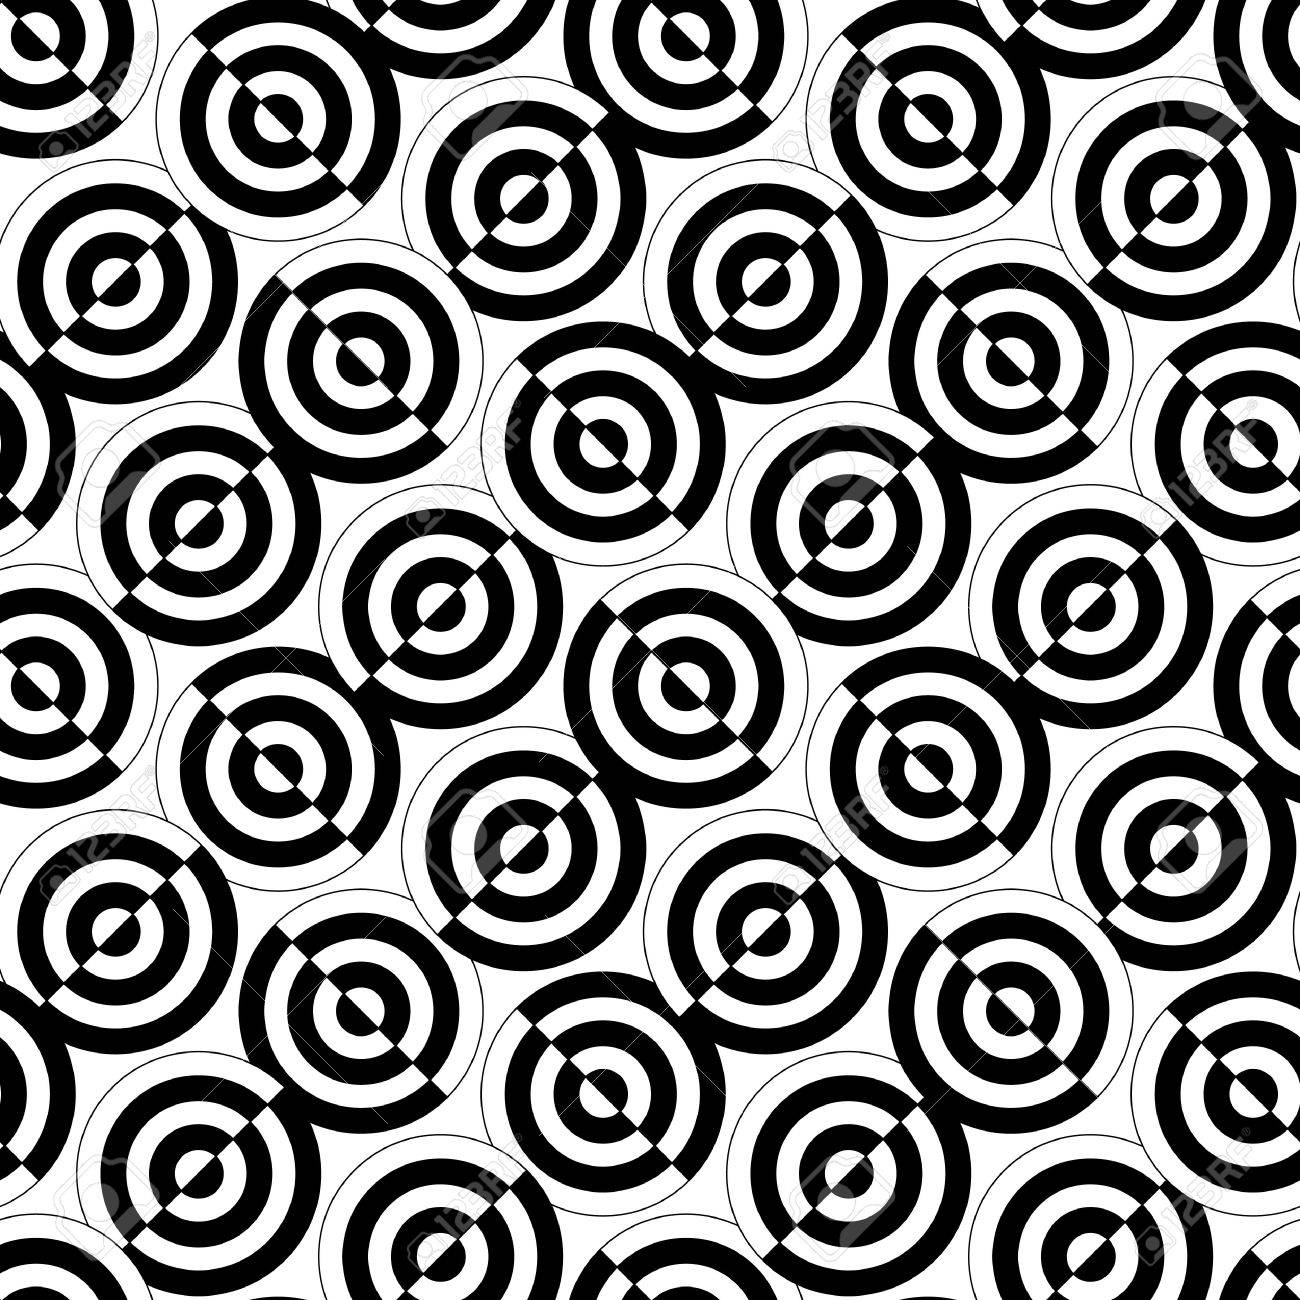 Retro black and white seamless circle background Stock Vector - 8495070